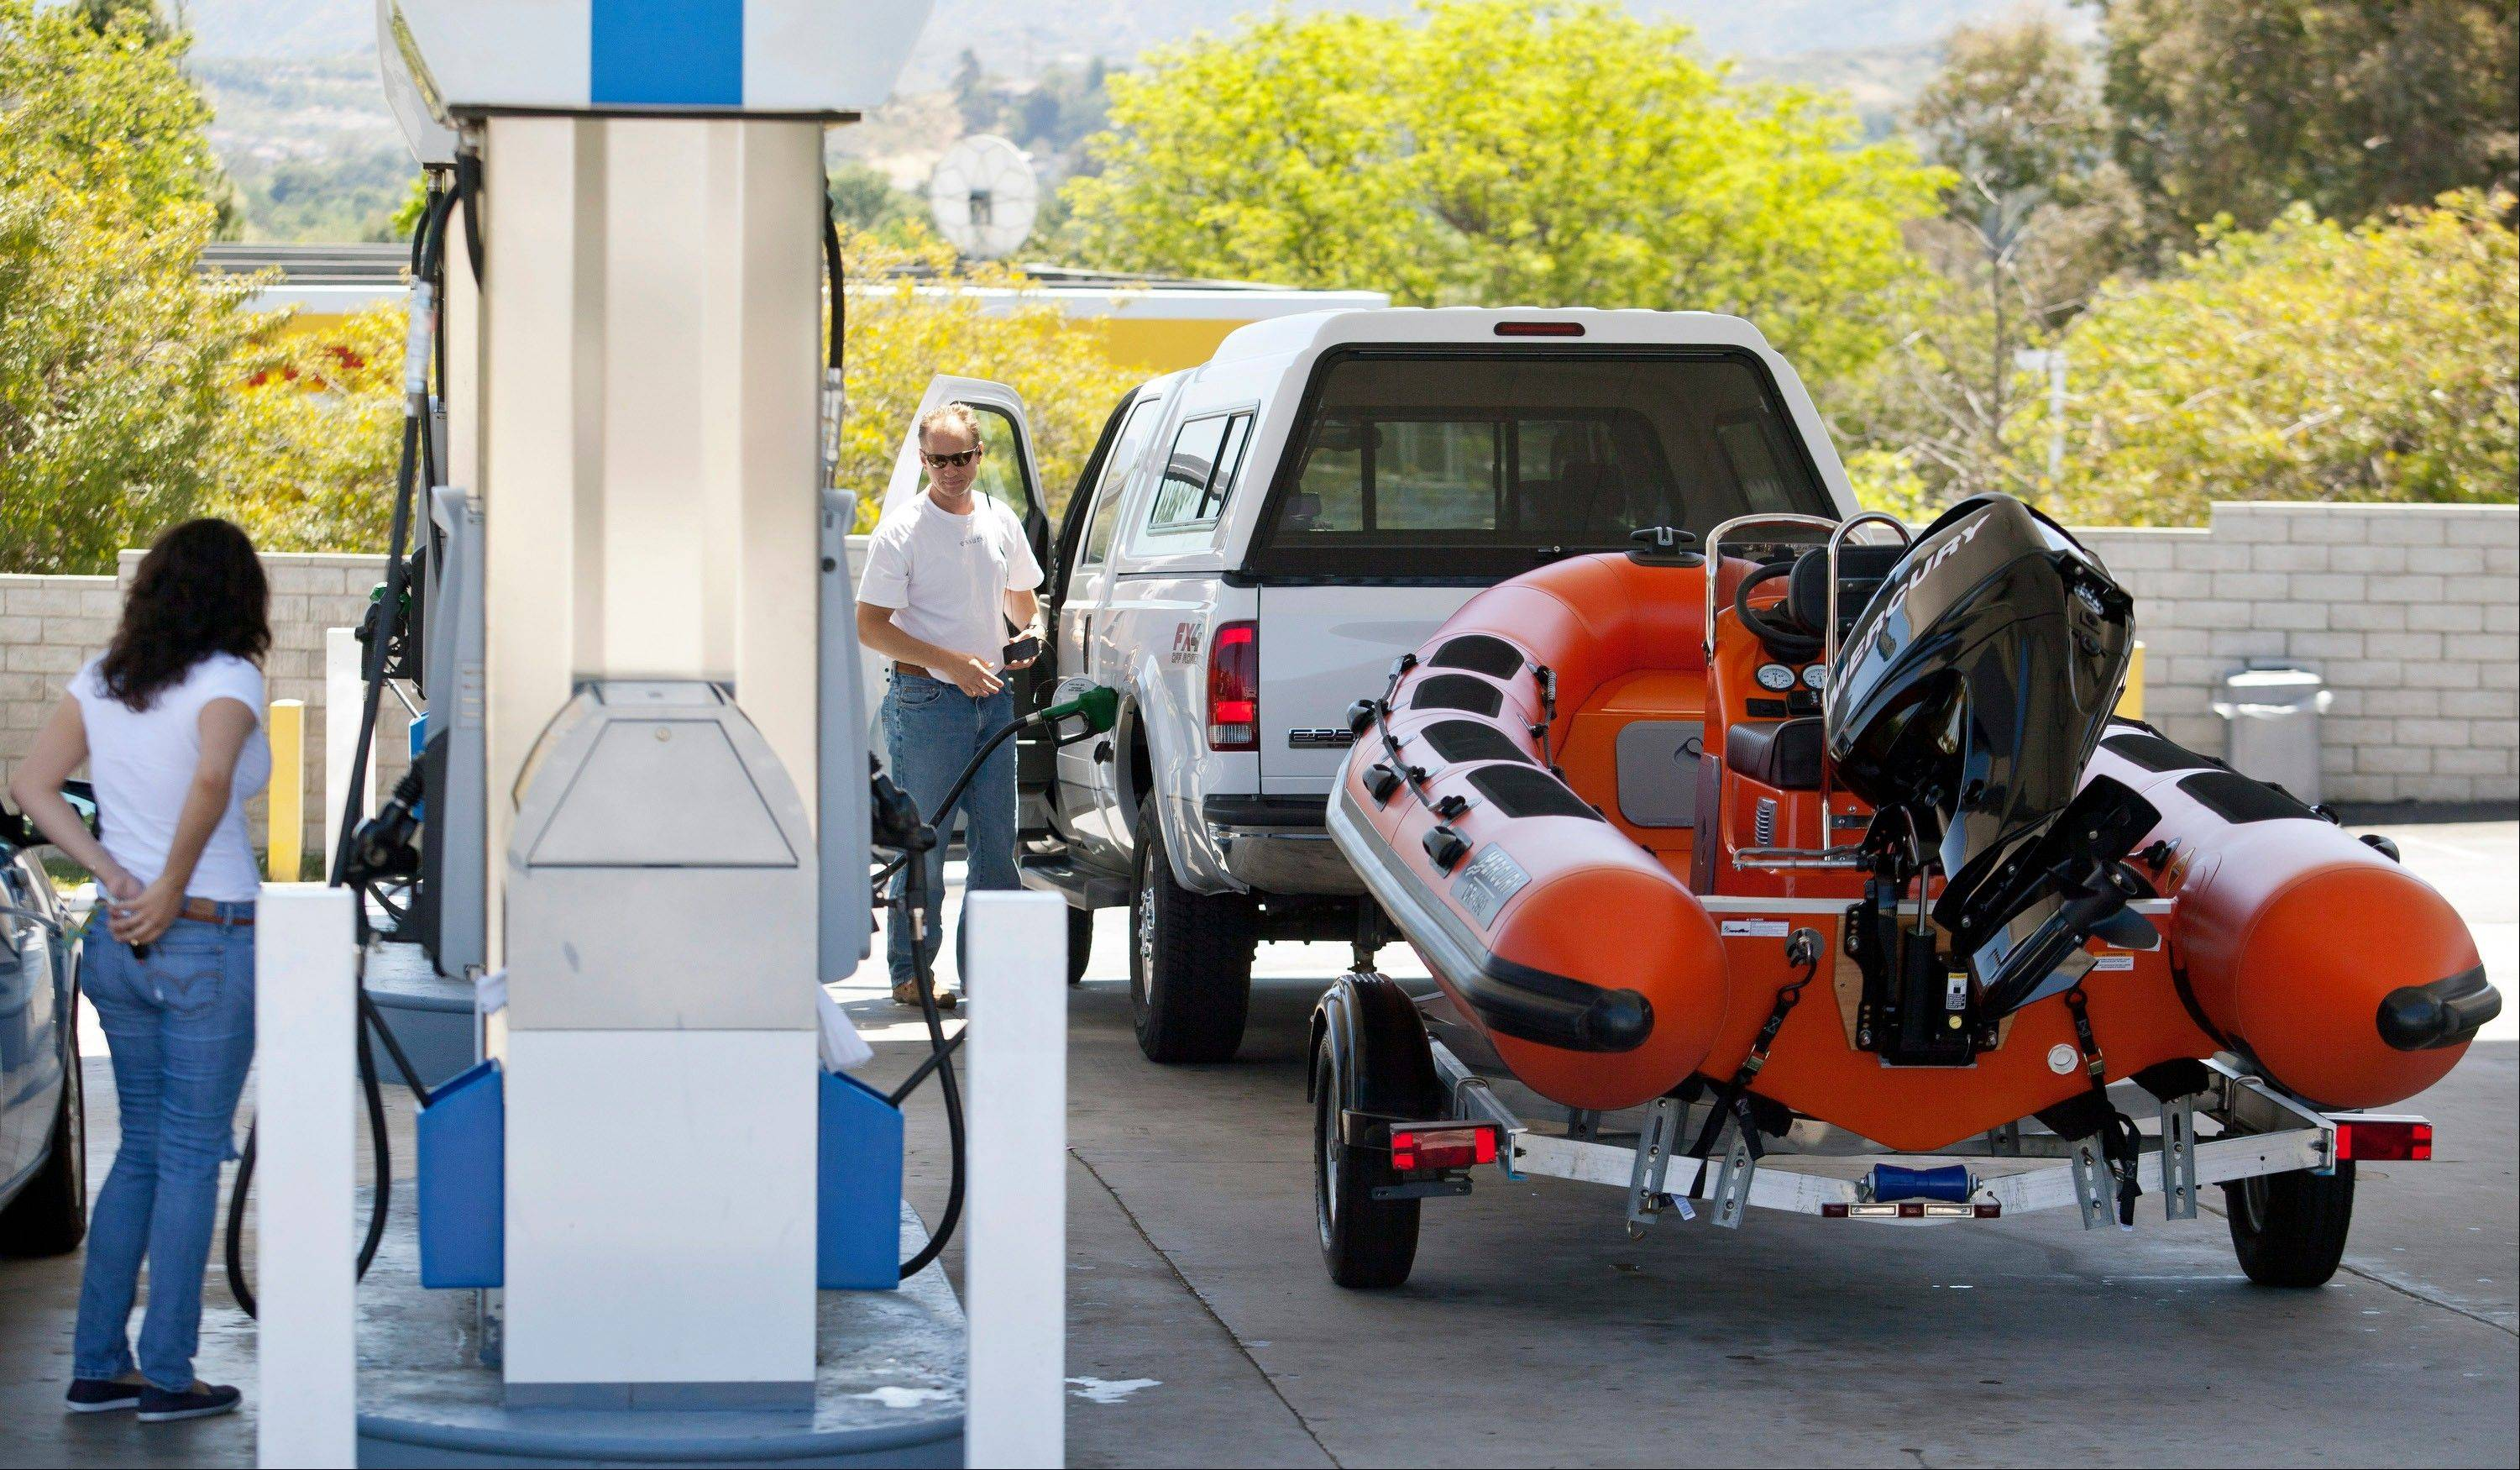 Daily Herald file photo High gas prices may put a cramp in some vacationers' style this Labor Day weekend.